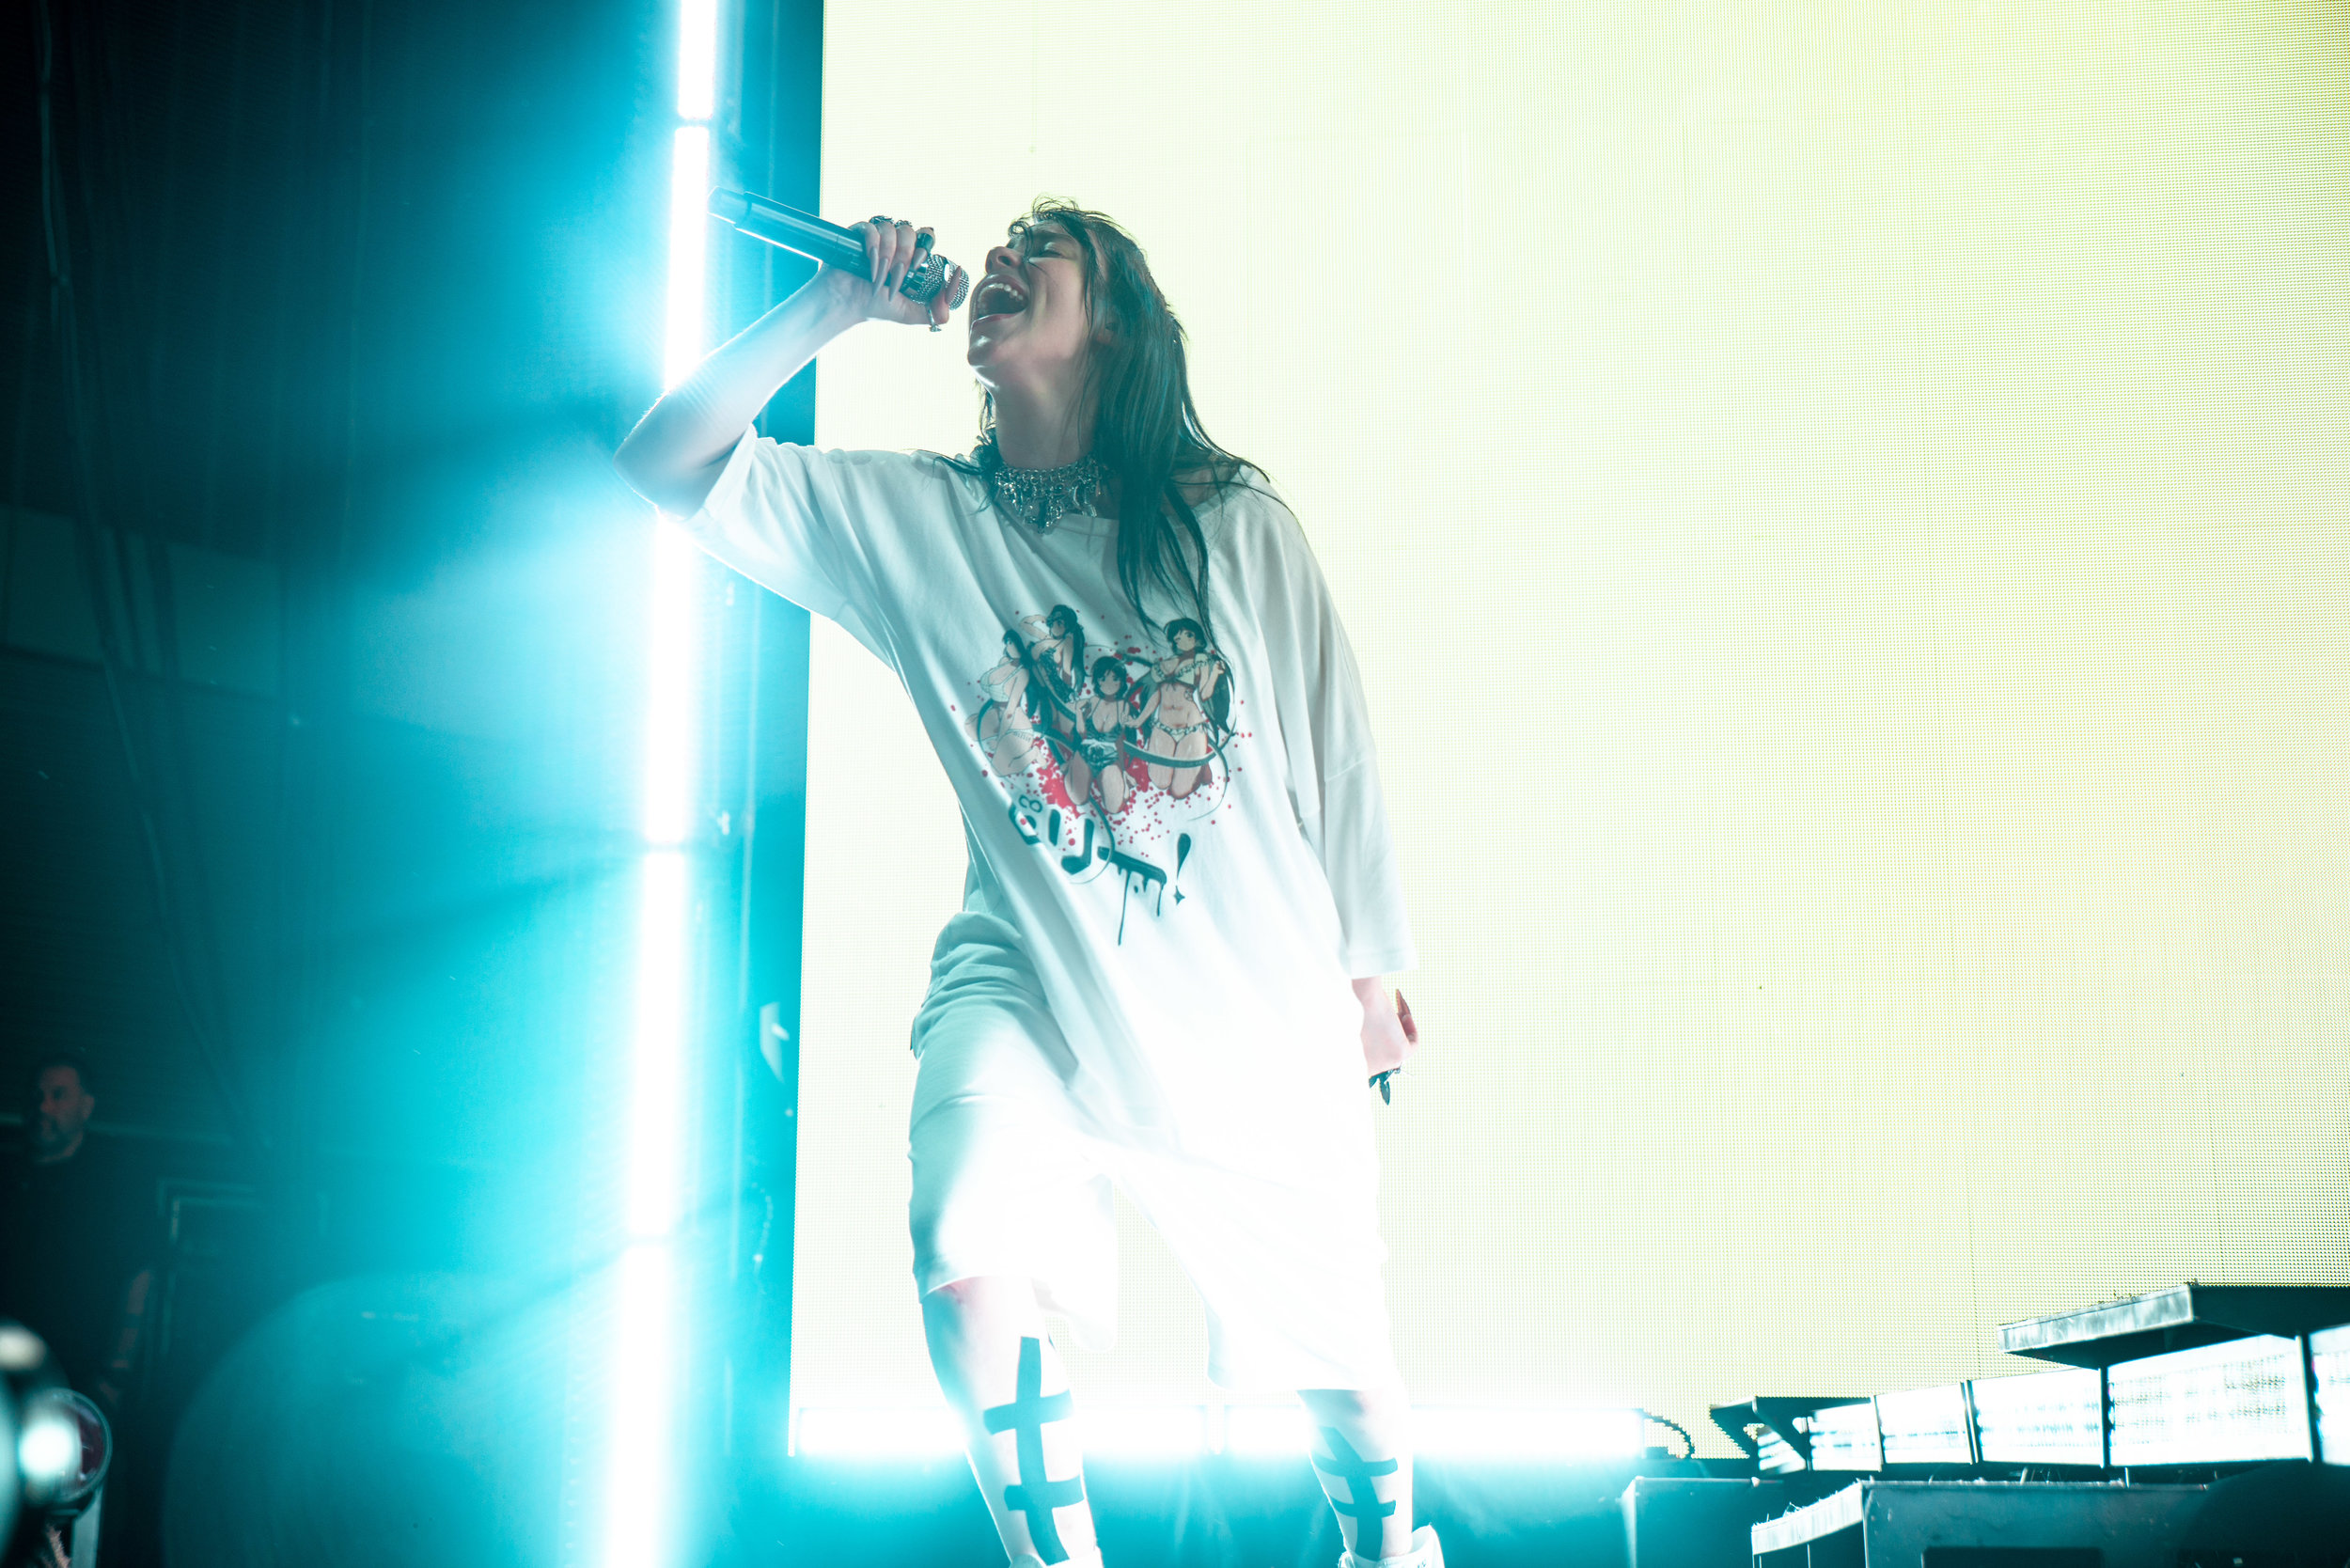 billie-eilish-equirk-118.jpg